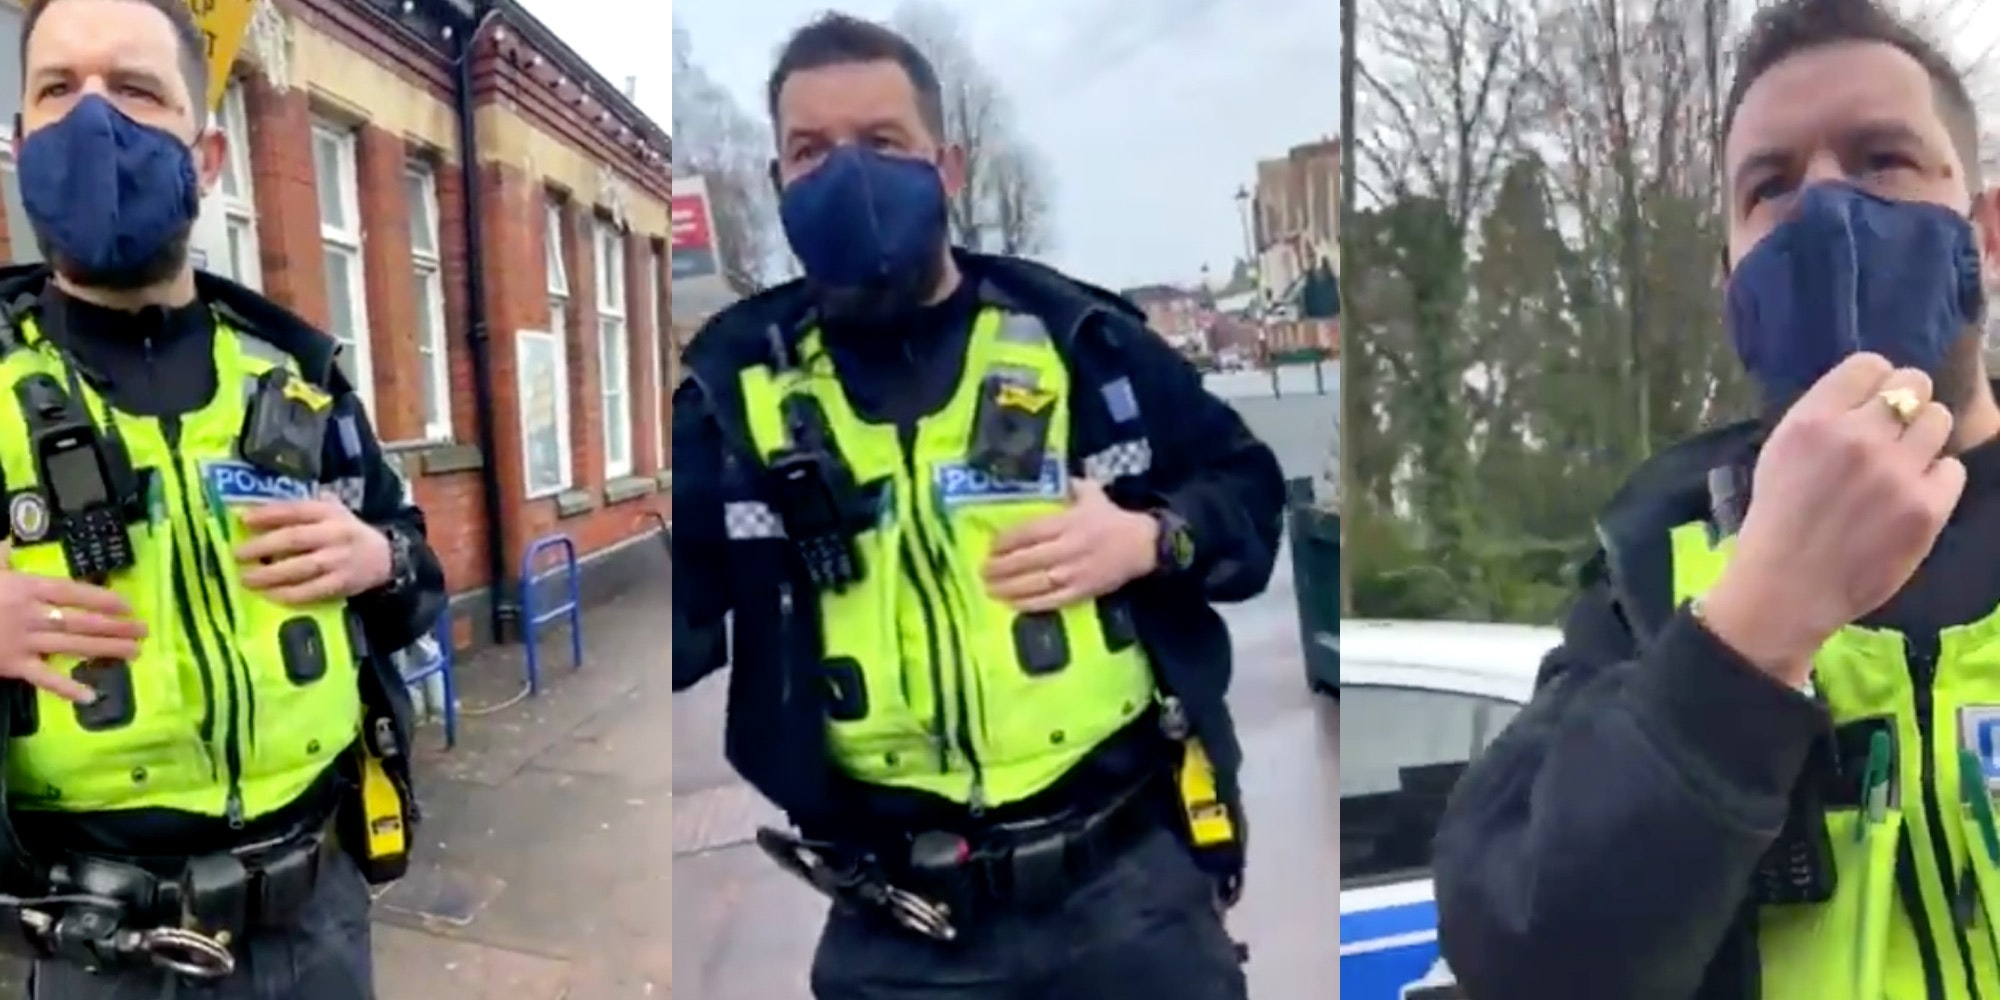 Video shows U.K. police detaining man who wouldn't say his name.